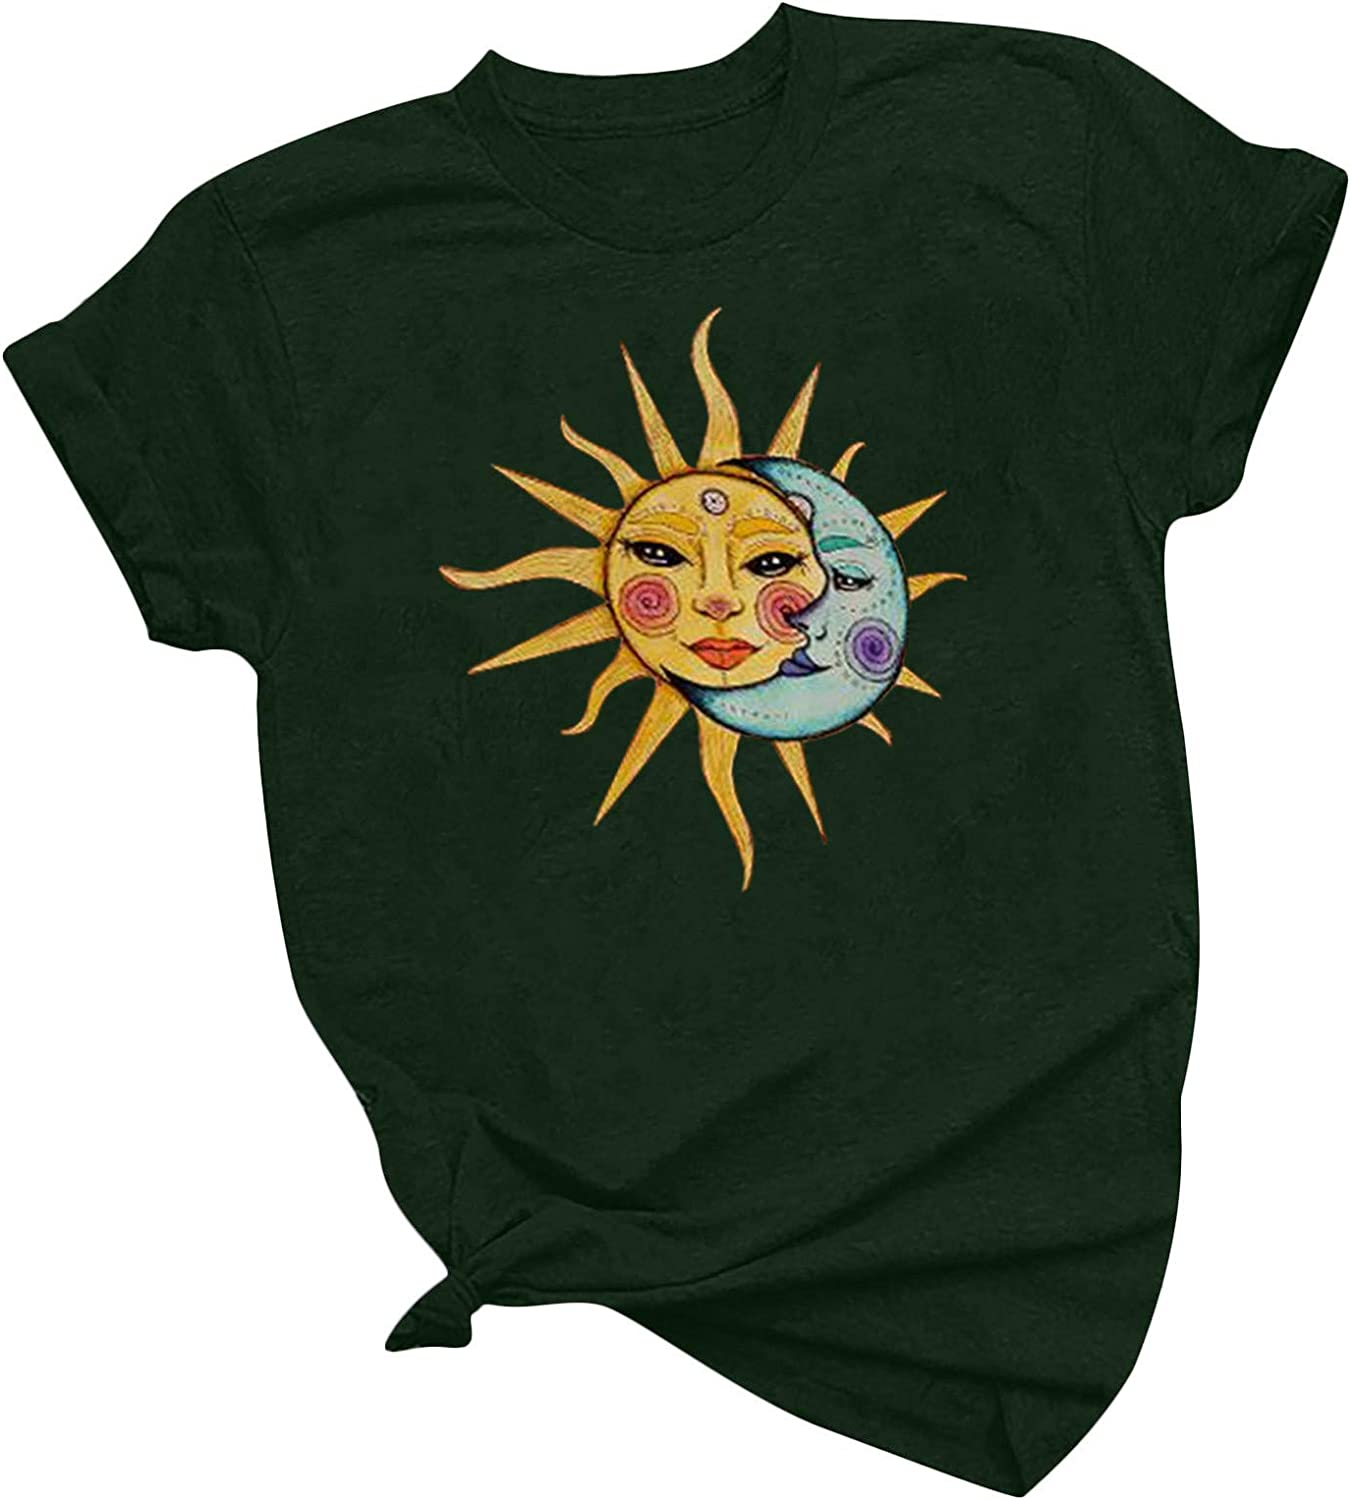 Aukbays T-Shirts for Womens Short Sleeve Sun and Moon Graphic Vintage Printing Tops Loose Fit Summer Blouse Tees Shirts